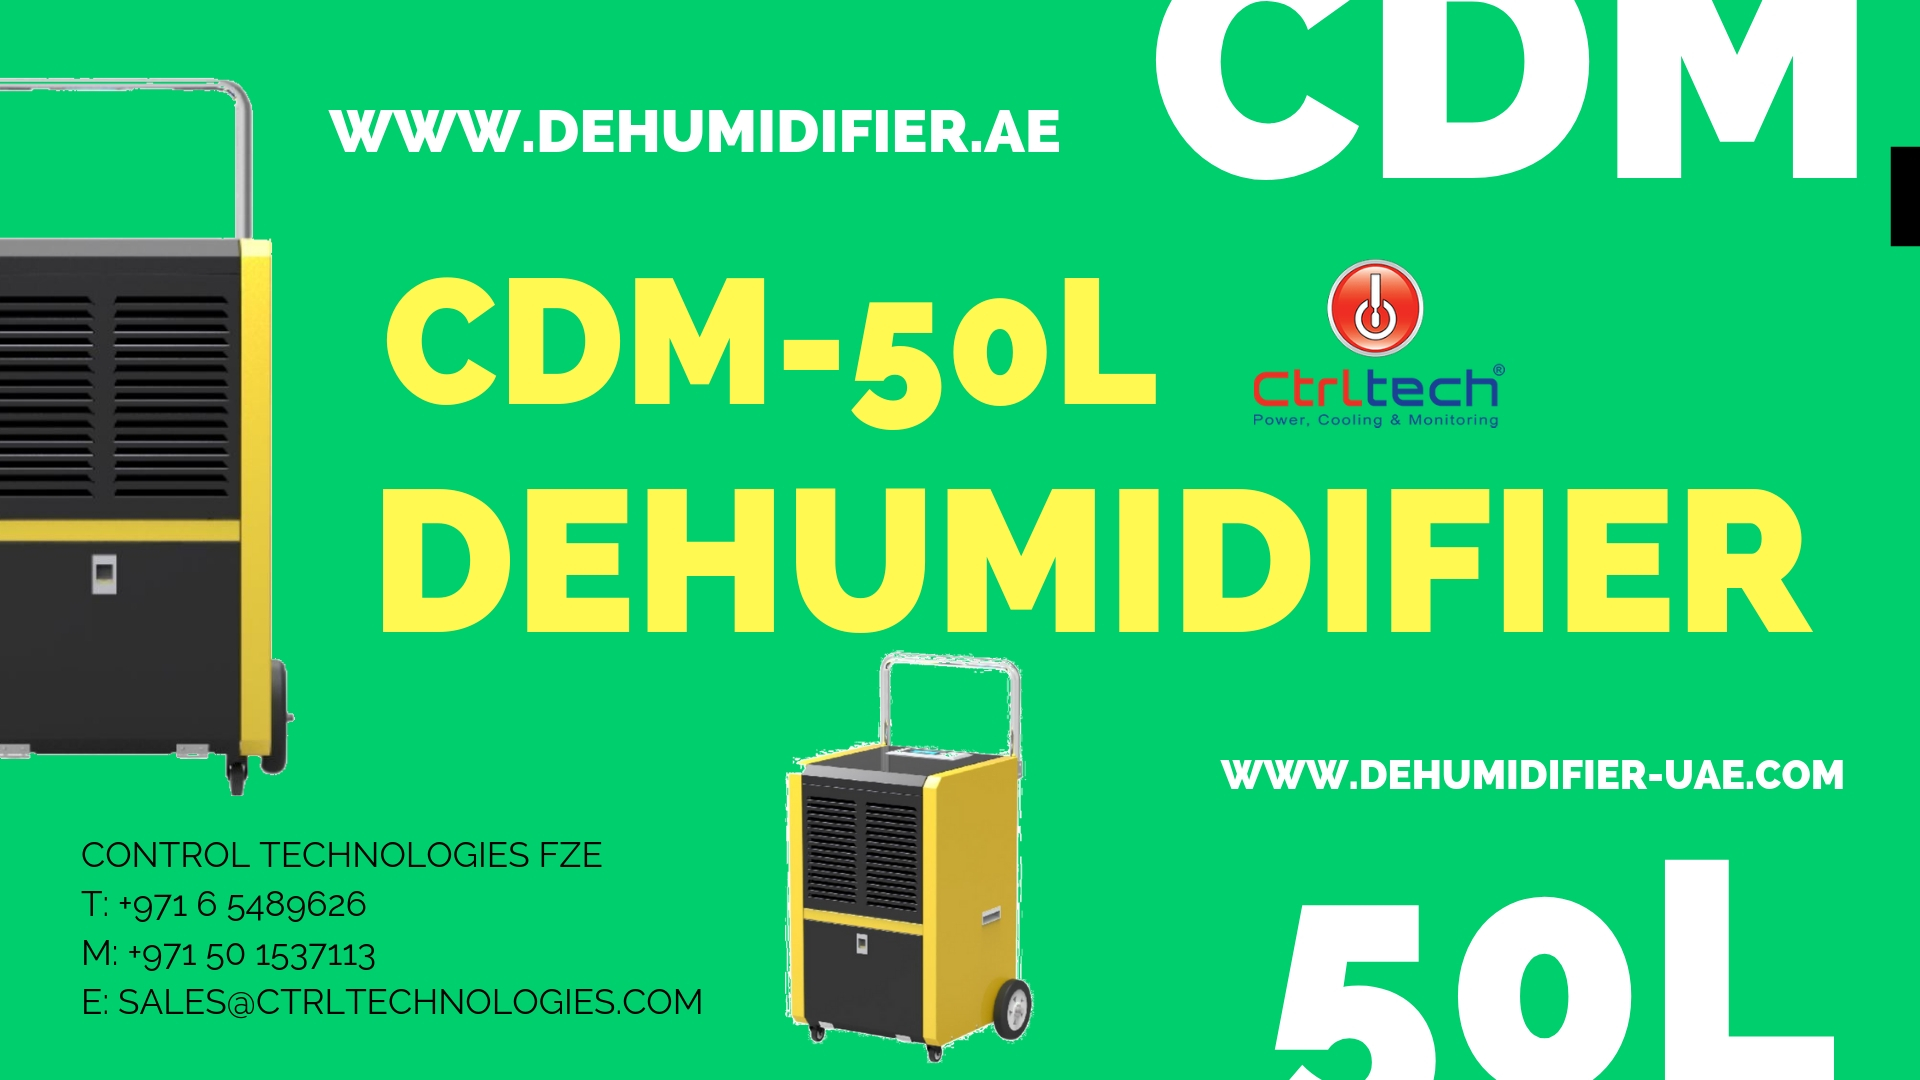 CDM-50L Industrial Dehumidifier or Commercial dehumidifiers Review.